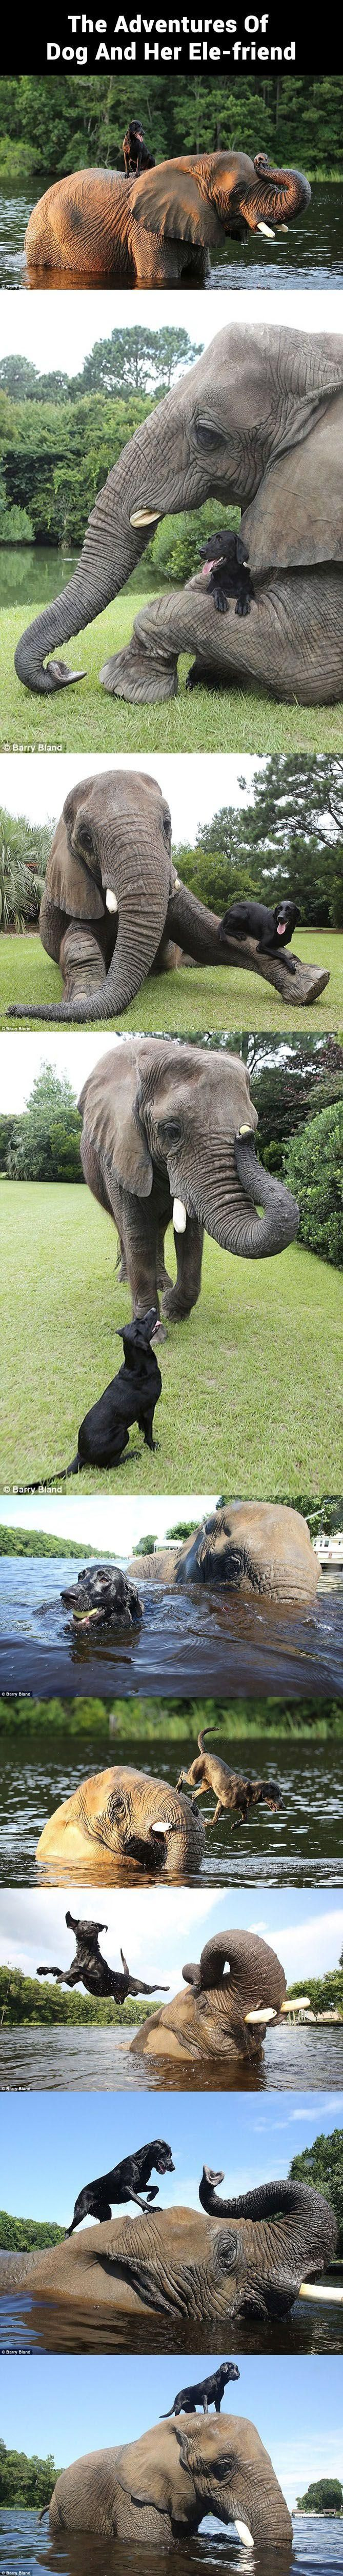 Elephant plays fetch with her puppy pal.. I can't even take it! This is adorableee!!!